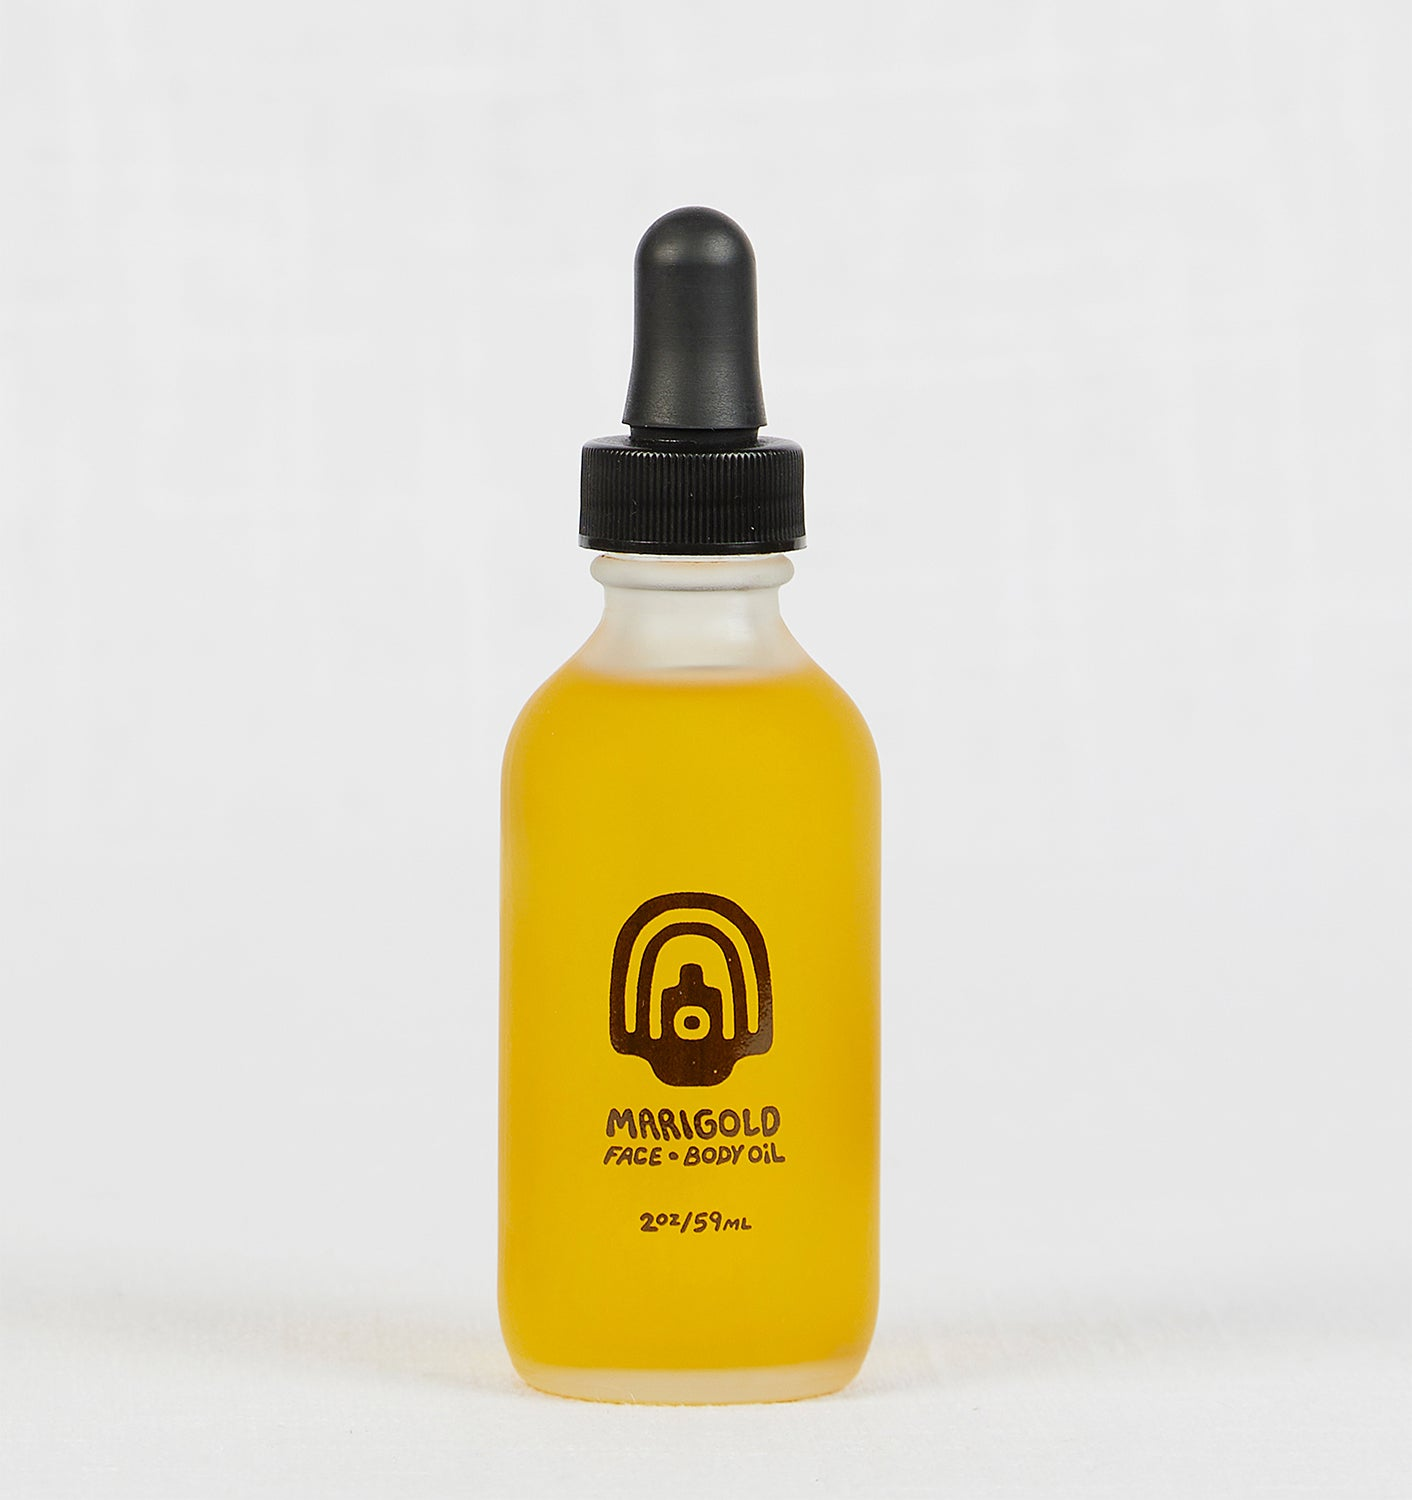 Marigold Face and Body Oil